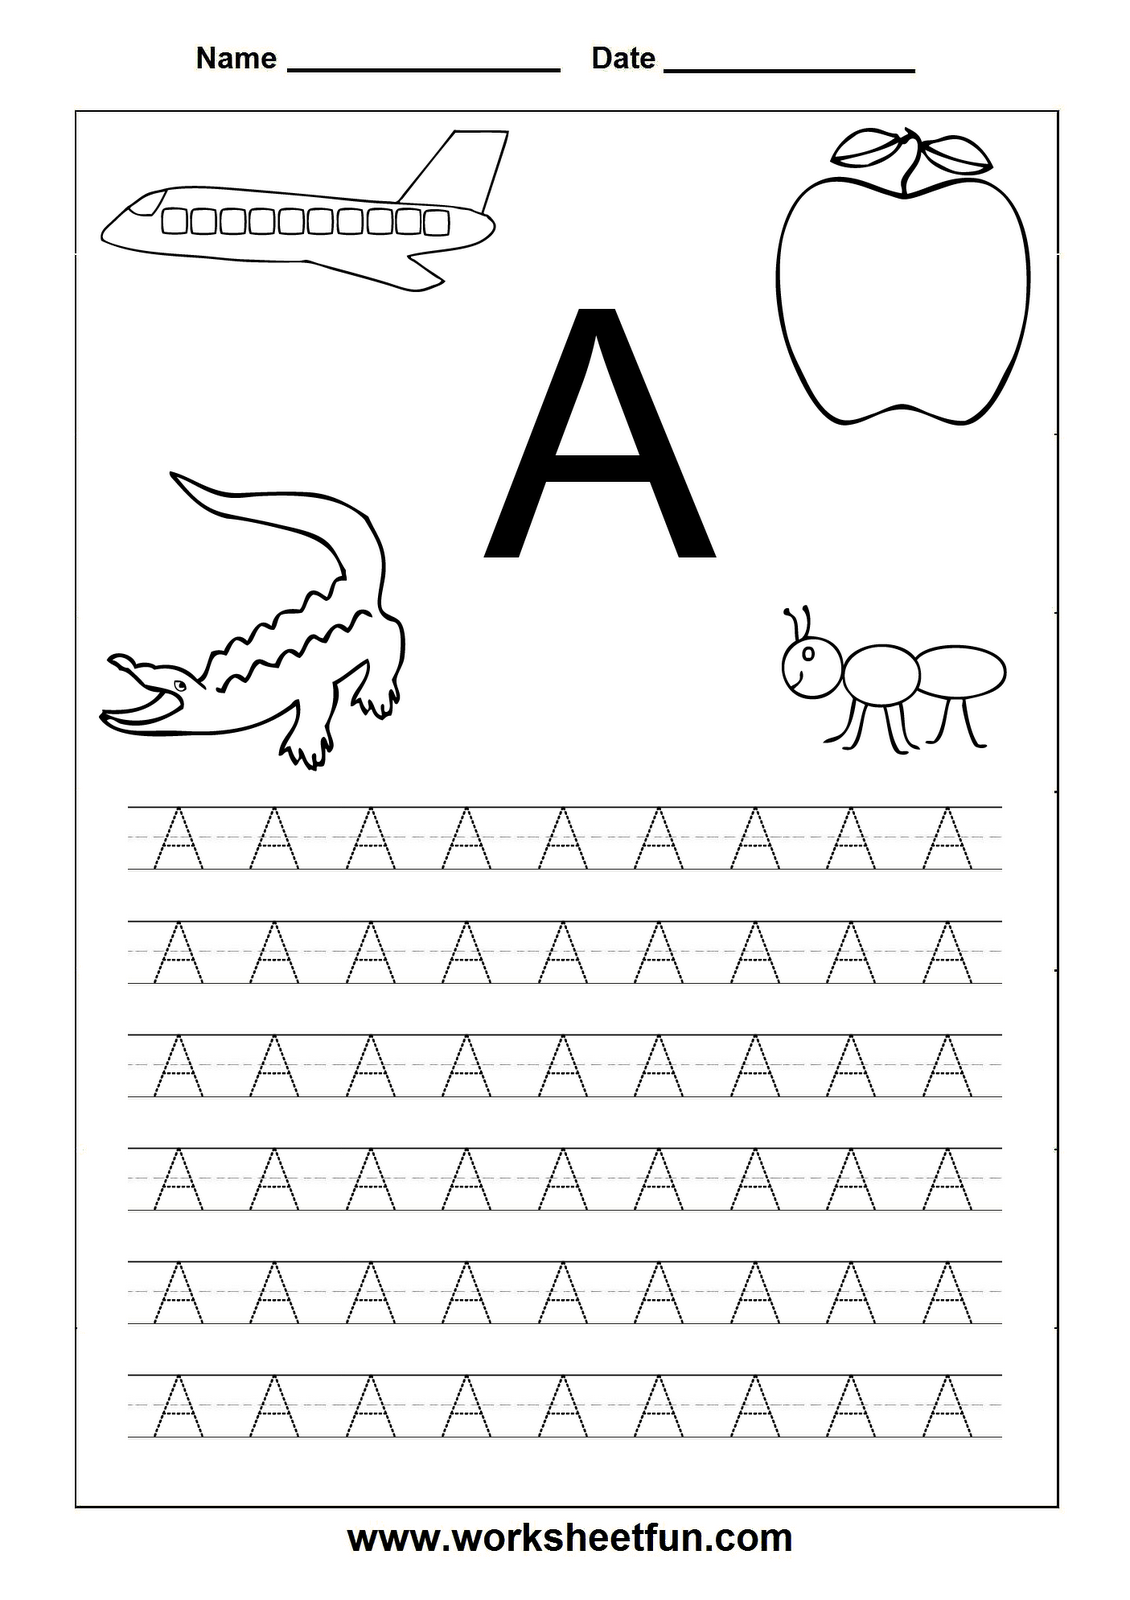 math worksheet : 1000 images about letters on pinterest  letter worksheets  : Letter Worksheets For Kindergarten